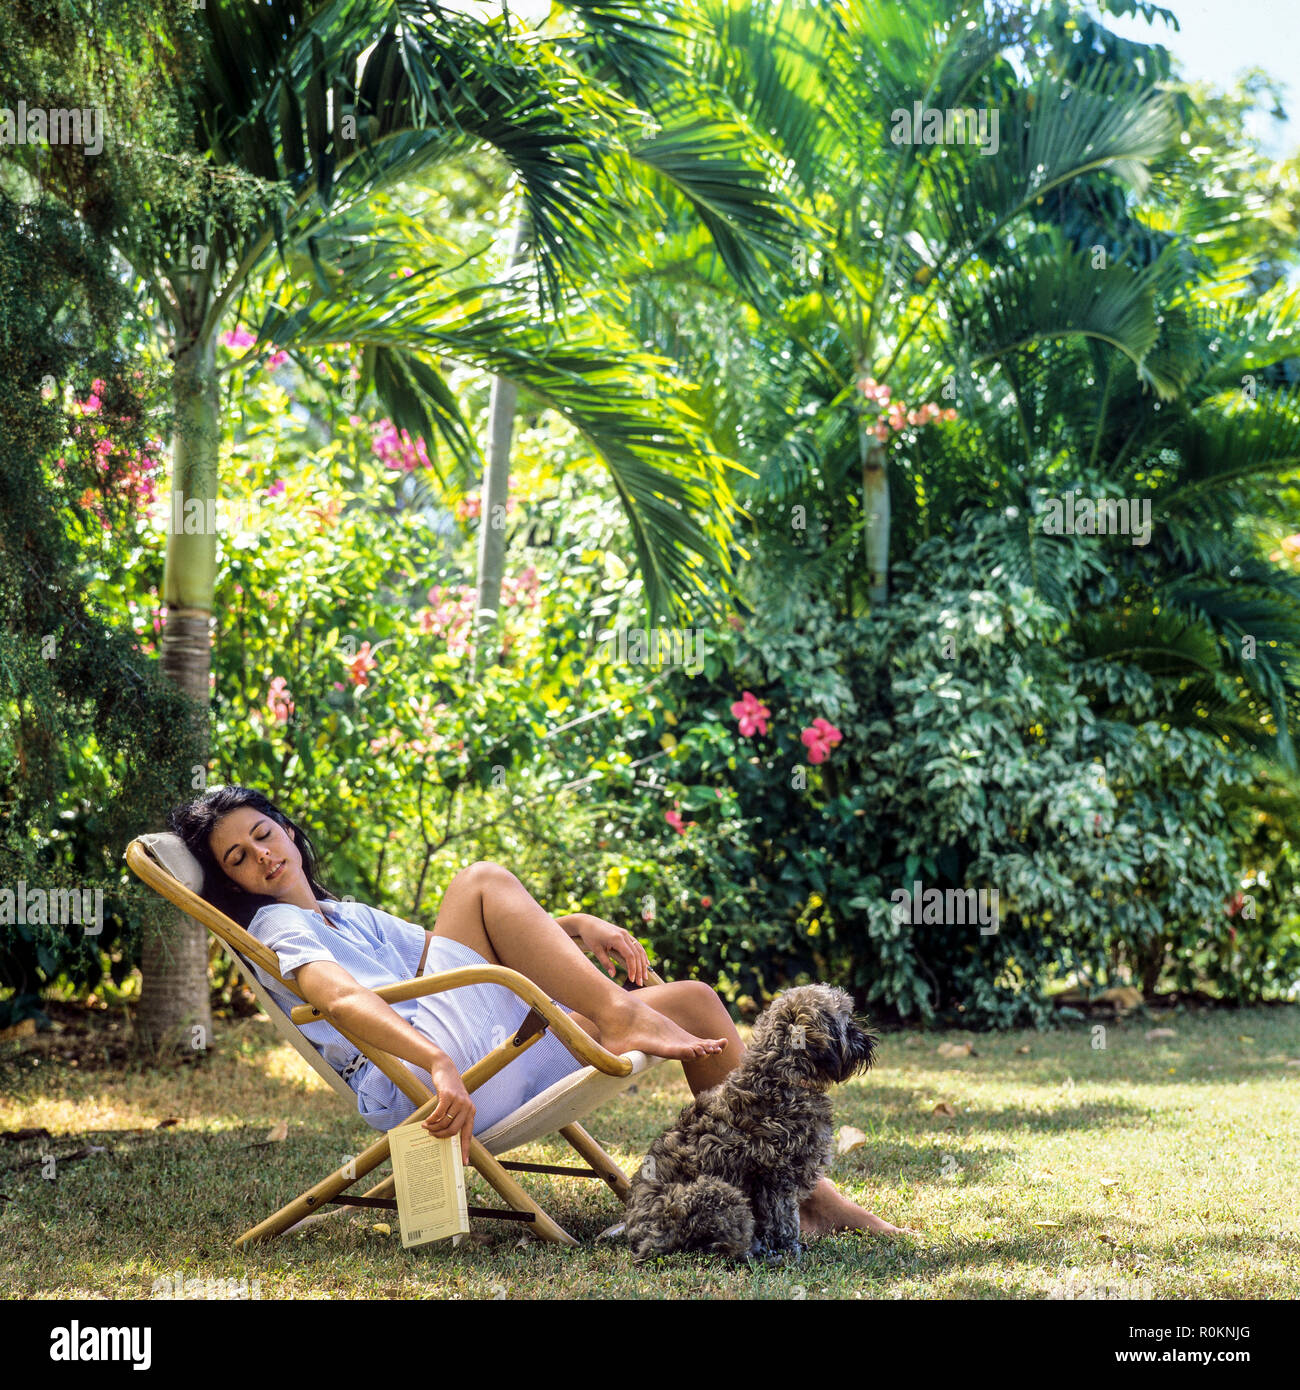 Young woman napping in deck chair, dog, tropical garden, Guadeloupe, French West Indies, - Stock Image